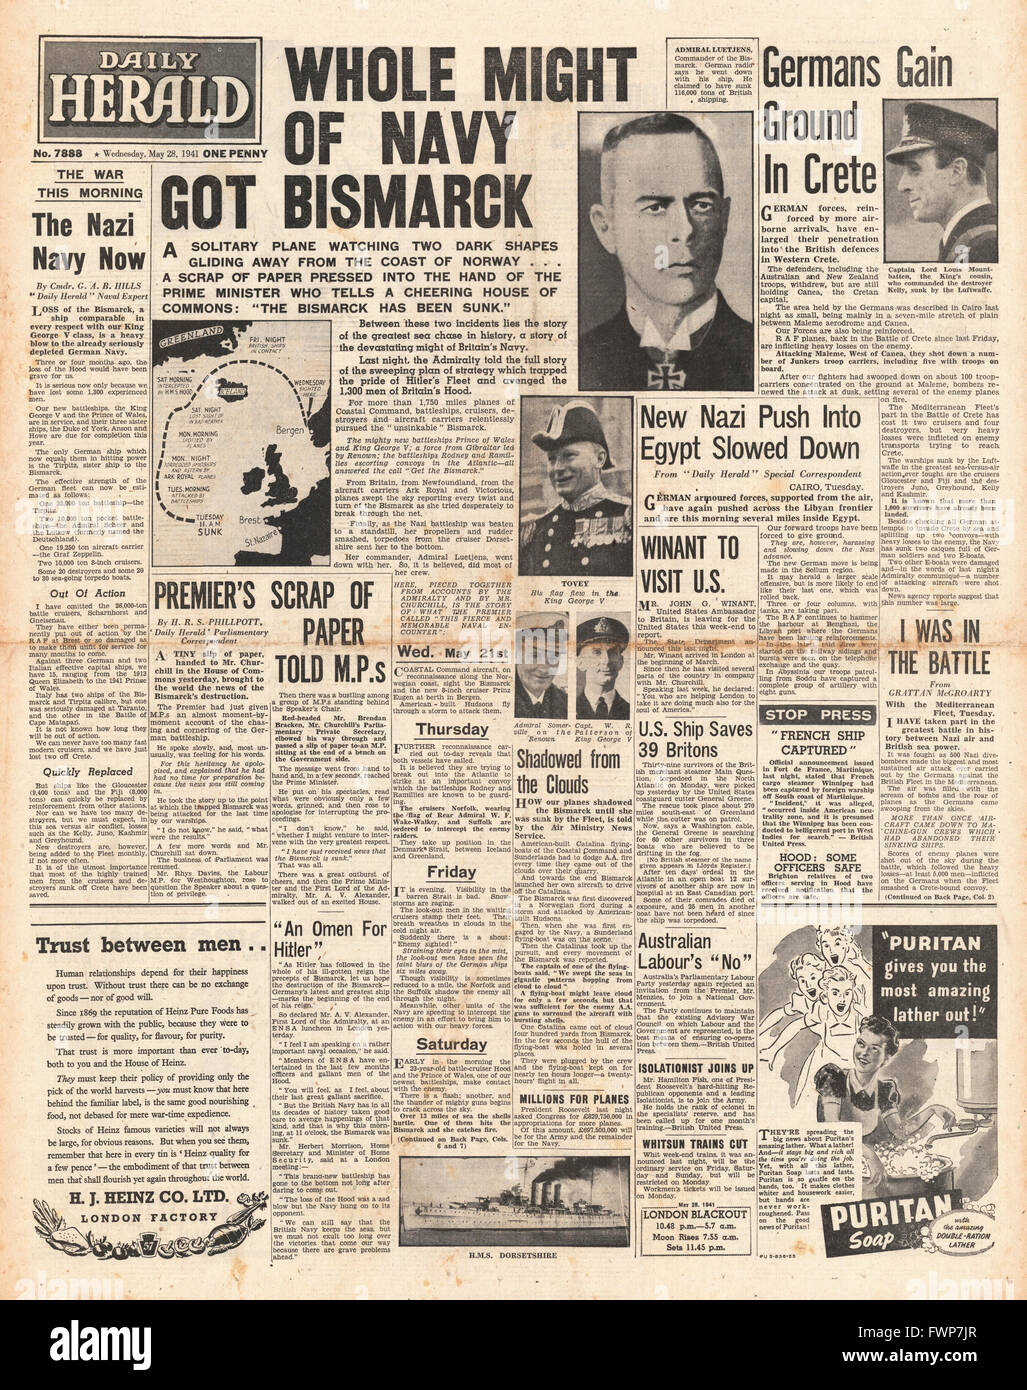 1941 front page Daily Herald  Battle for Crete and Royal Navy Planes torpedo and sink the battleship Bismarck - Stock Image